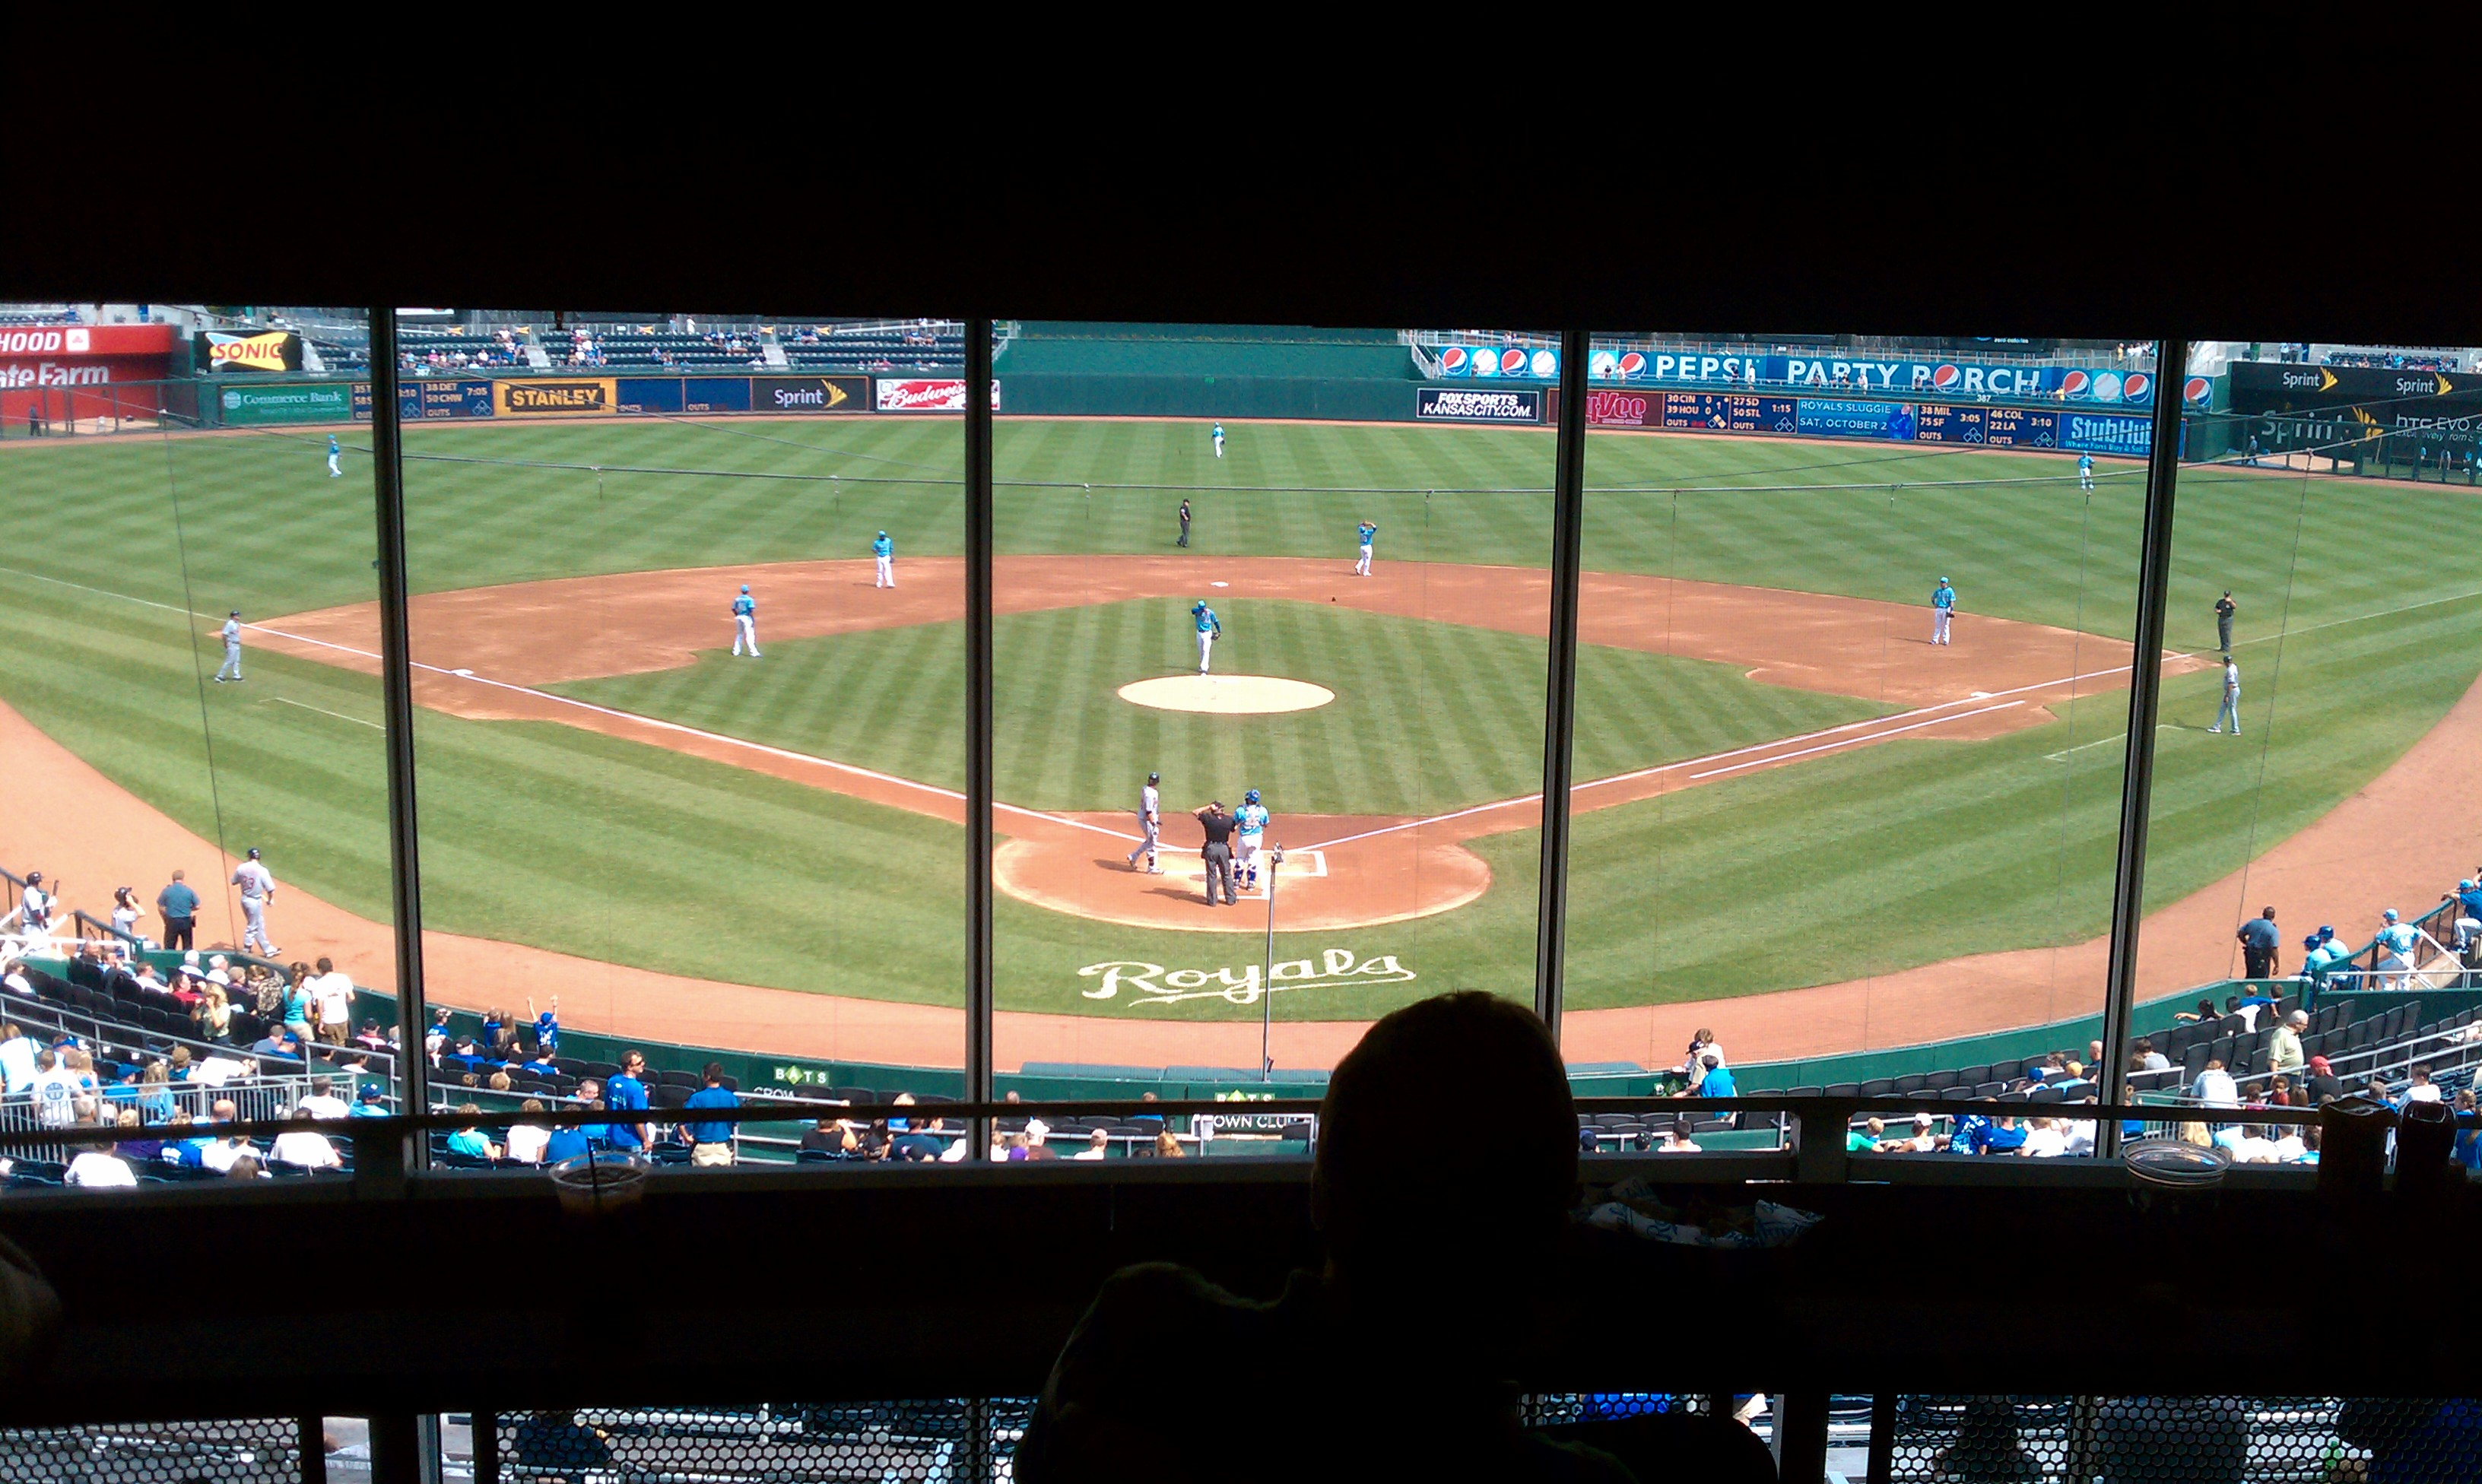 View from a barstool at the Diamond Club level